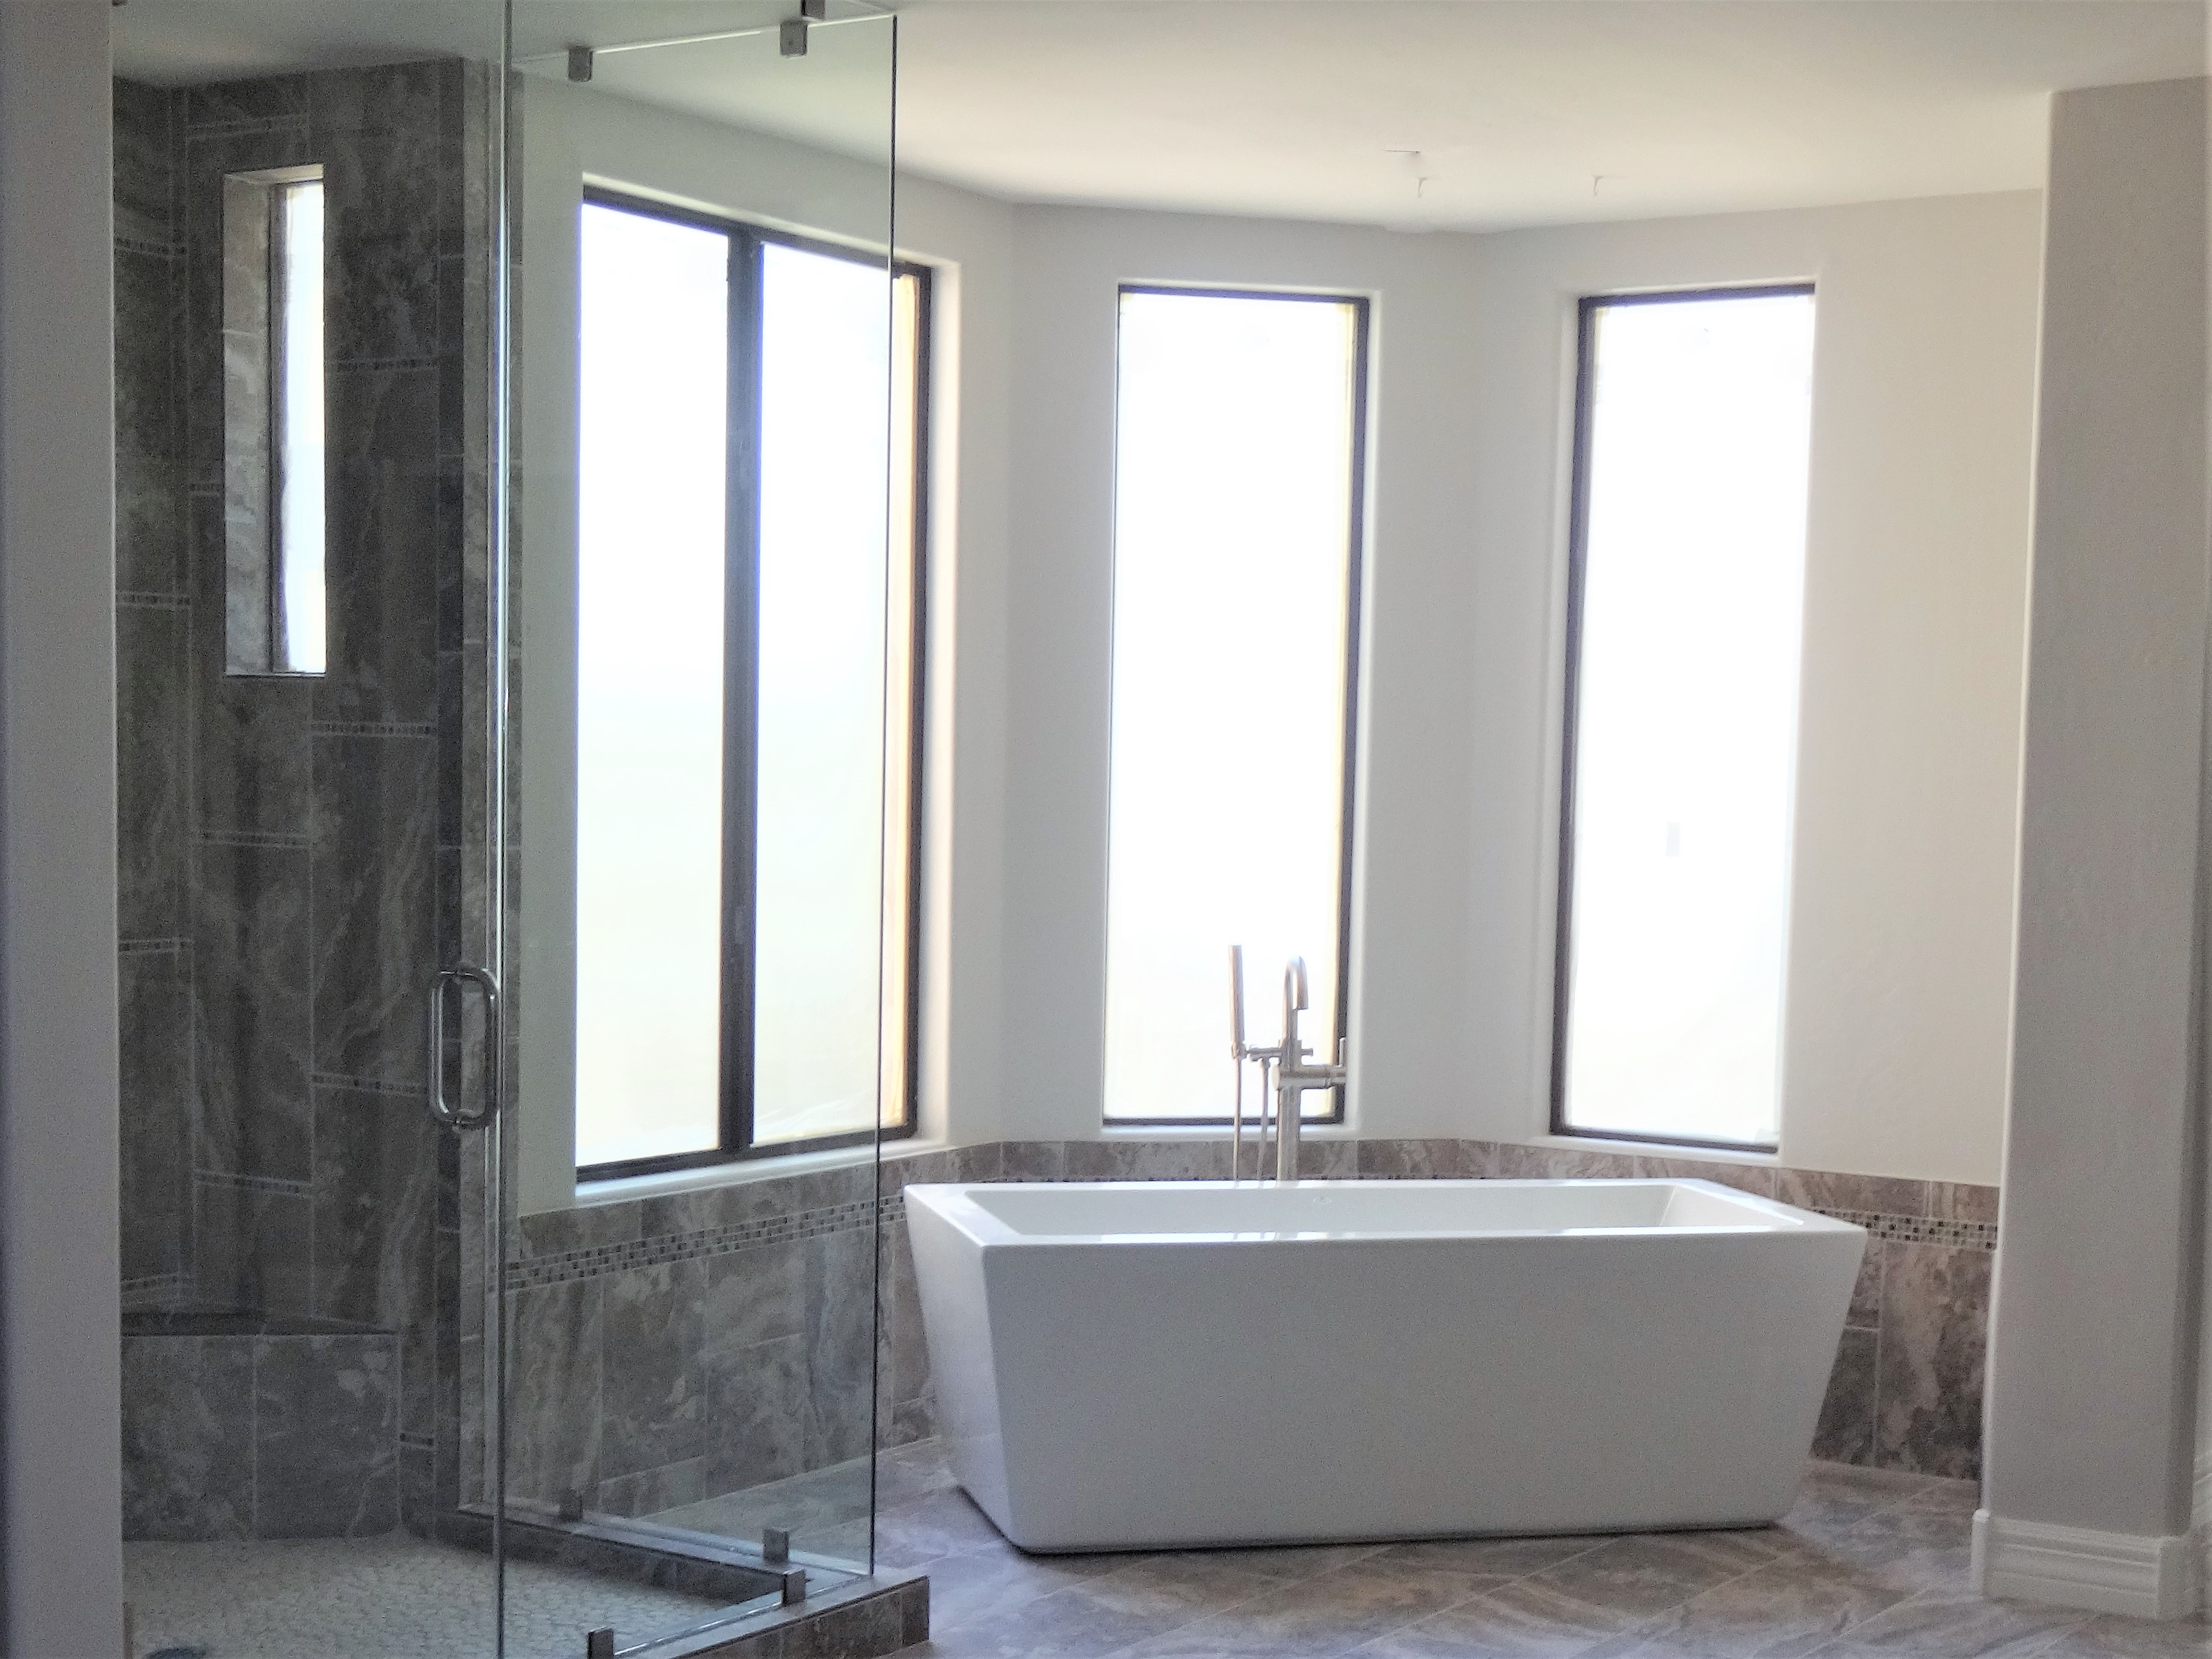 Bathroom Remodeling Phoenix Az Bathroom Remodeling Services In Phoenix Showers And Tubs